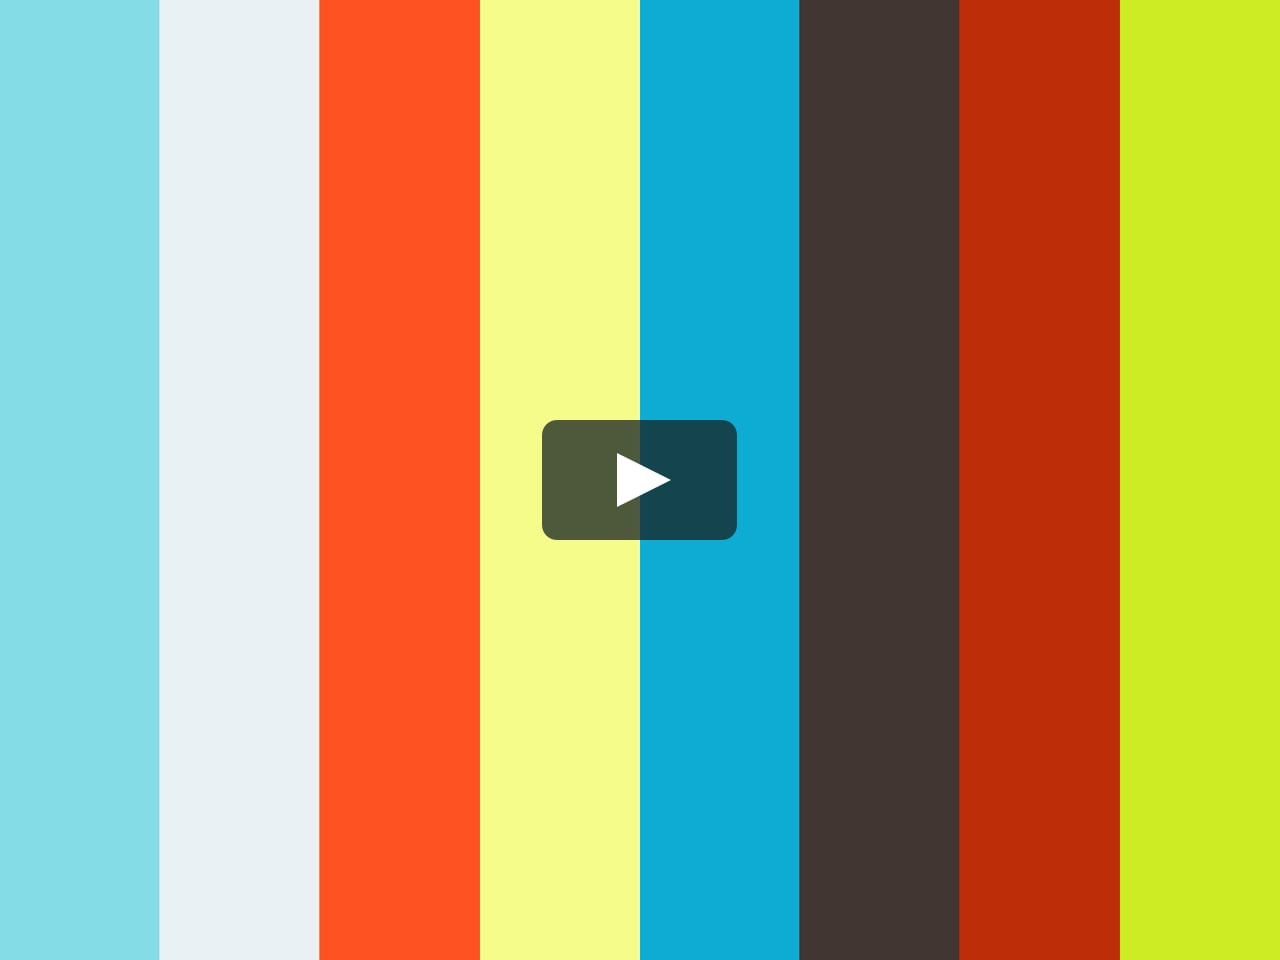 how to hire poster designer online get maximum benefits on vimeo